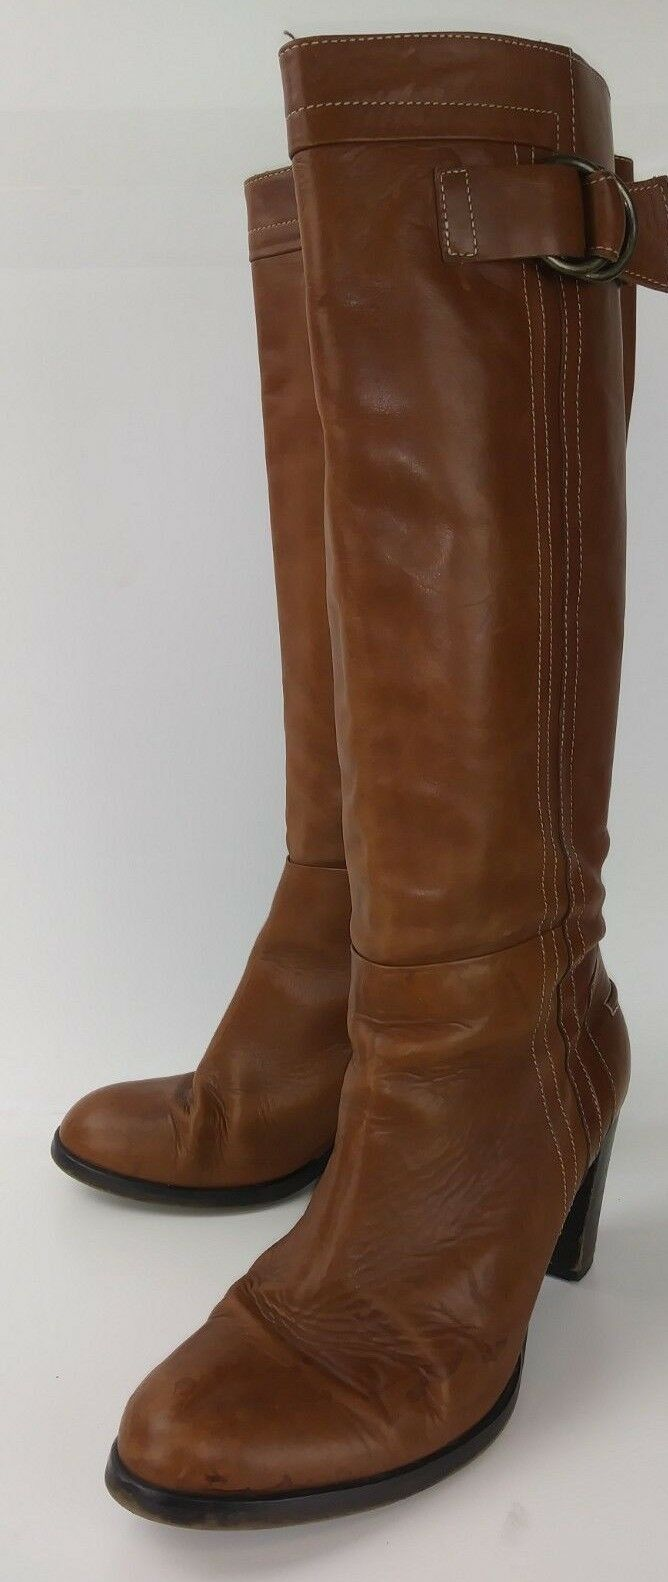 Womens 2009006 Boots Tall US 9 Brown Brown Brown Leather Casual Heels  2780 acf606